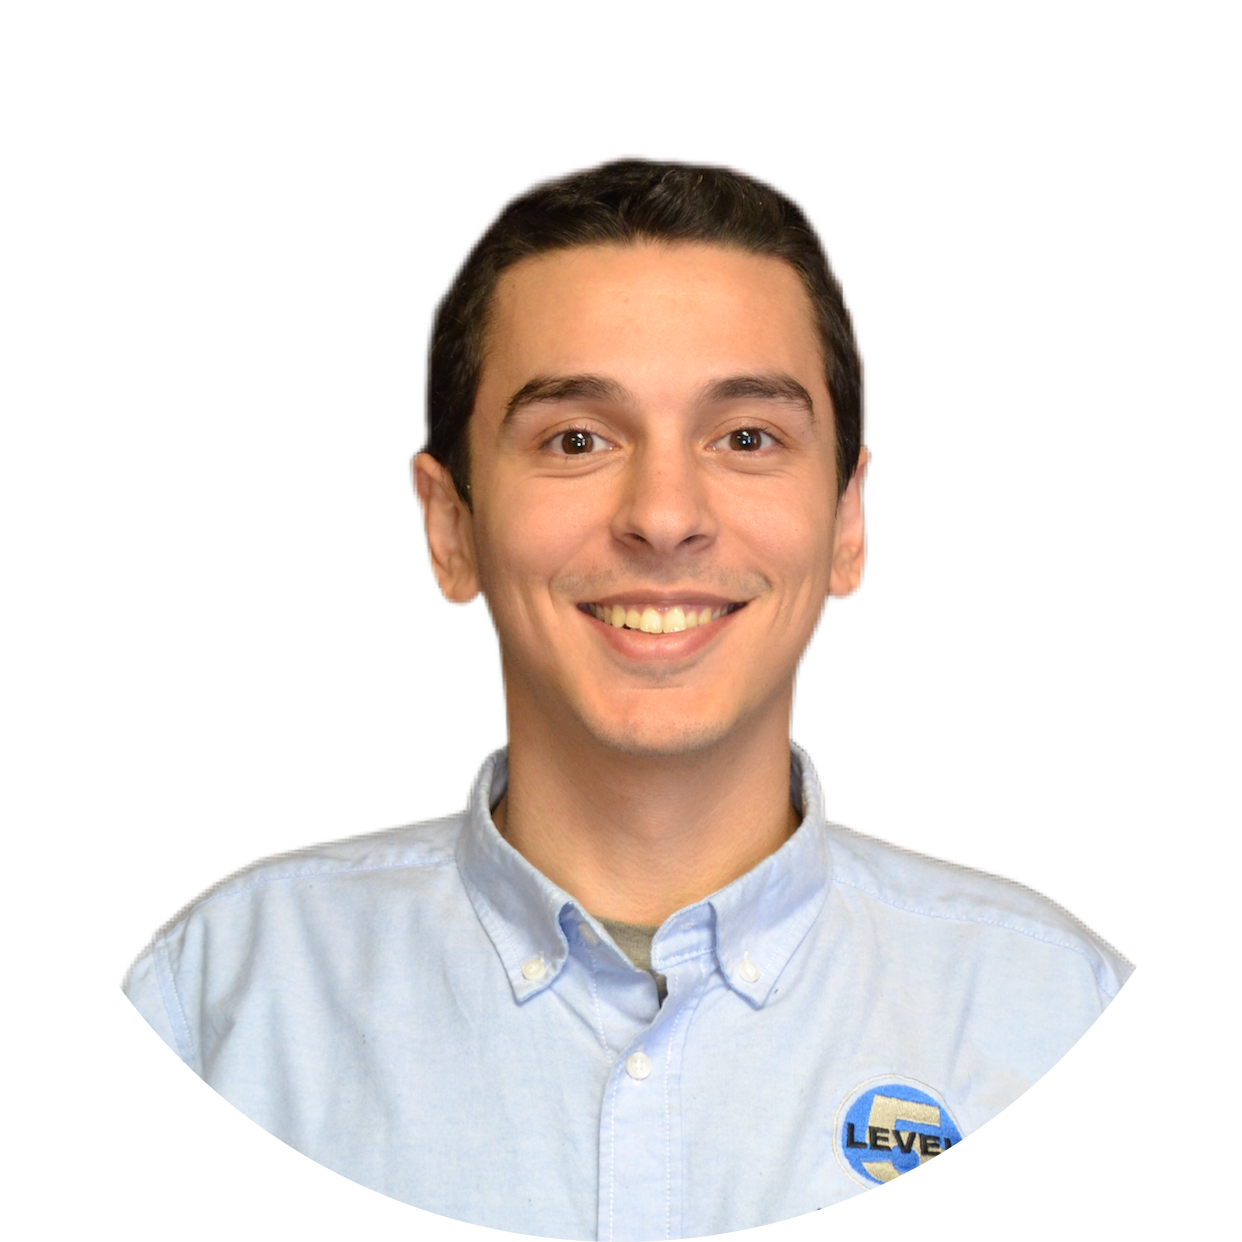 Nicholas Vargas - Service Manager | Managed IT Services Company